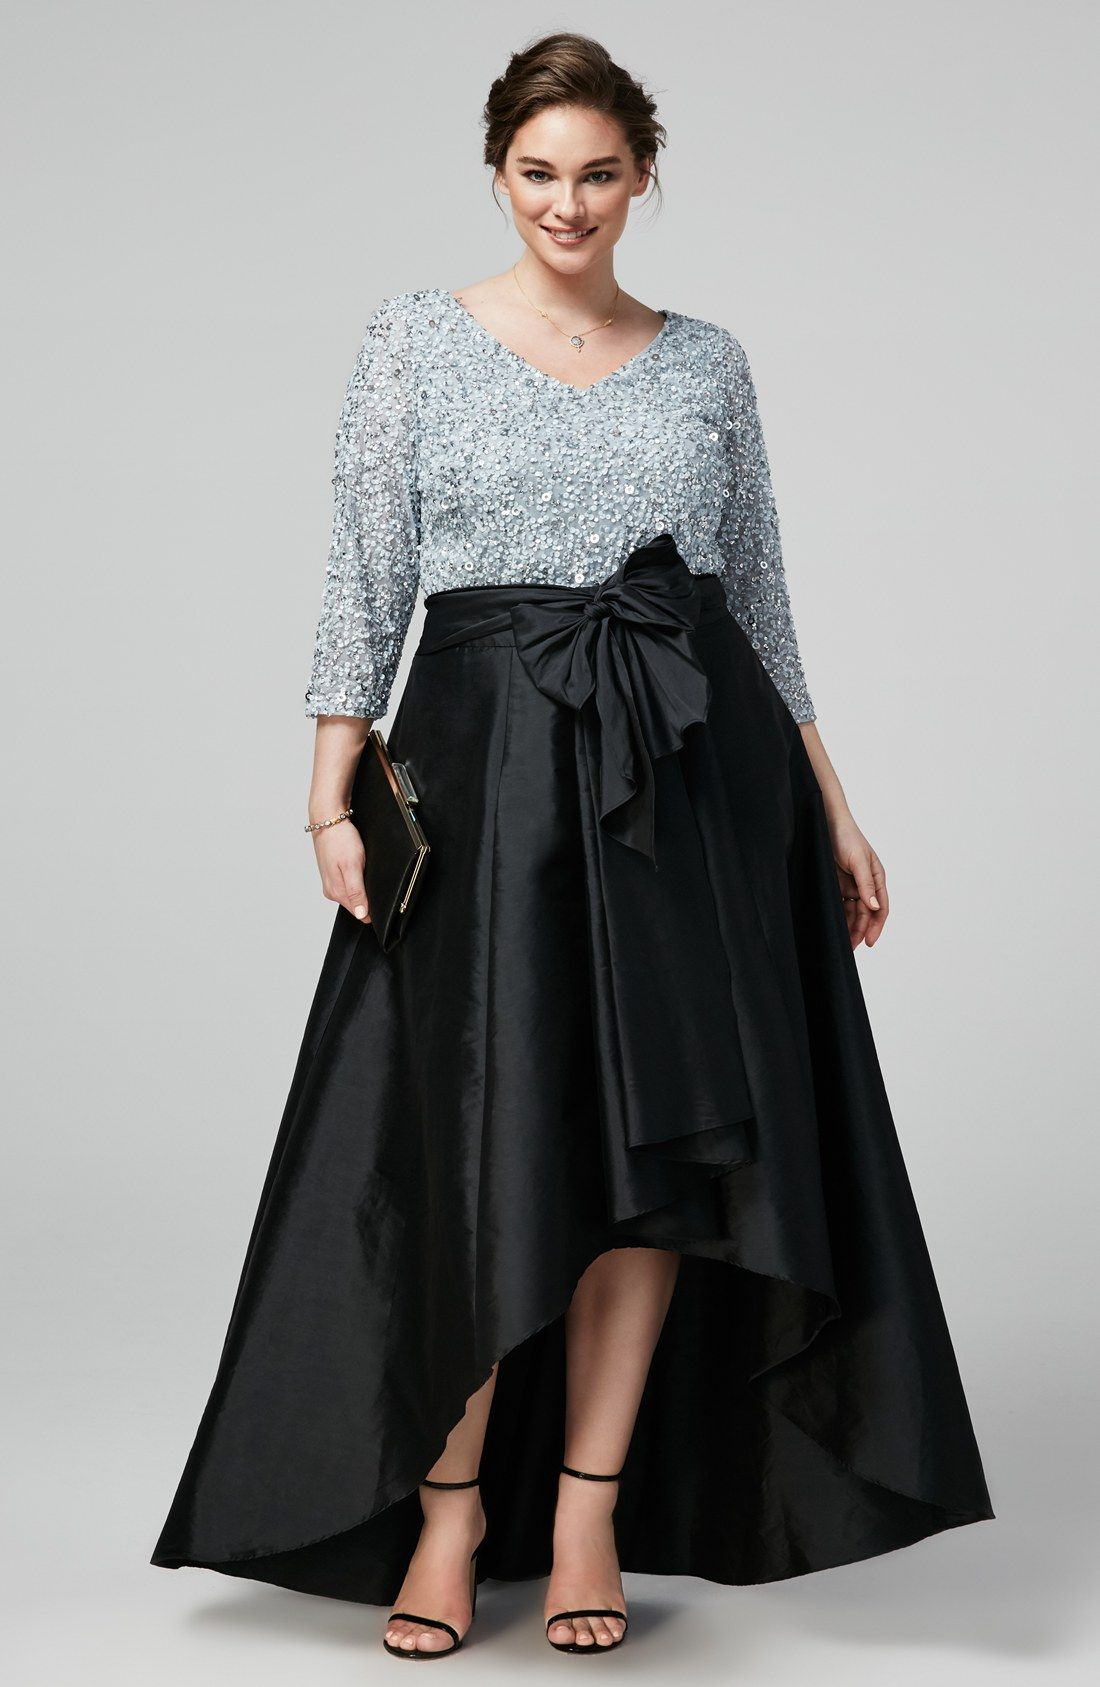 Adrianna Papell High Low Taffeta Skirt (Plus Size)  e6756ce78d9d